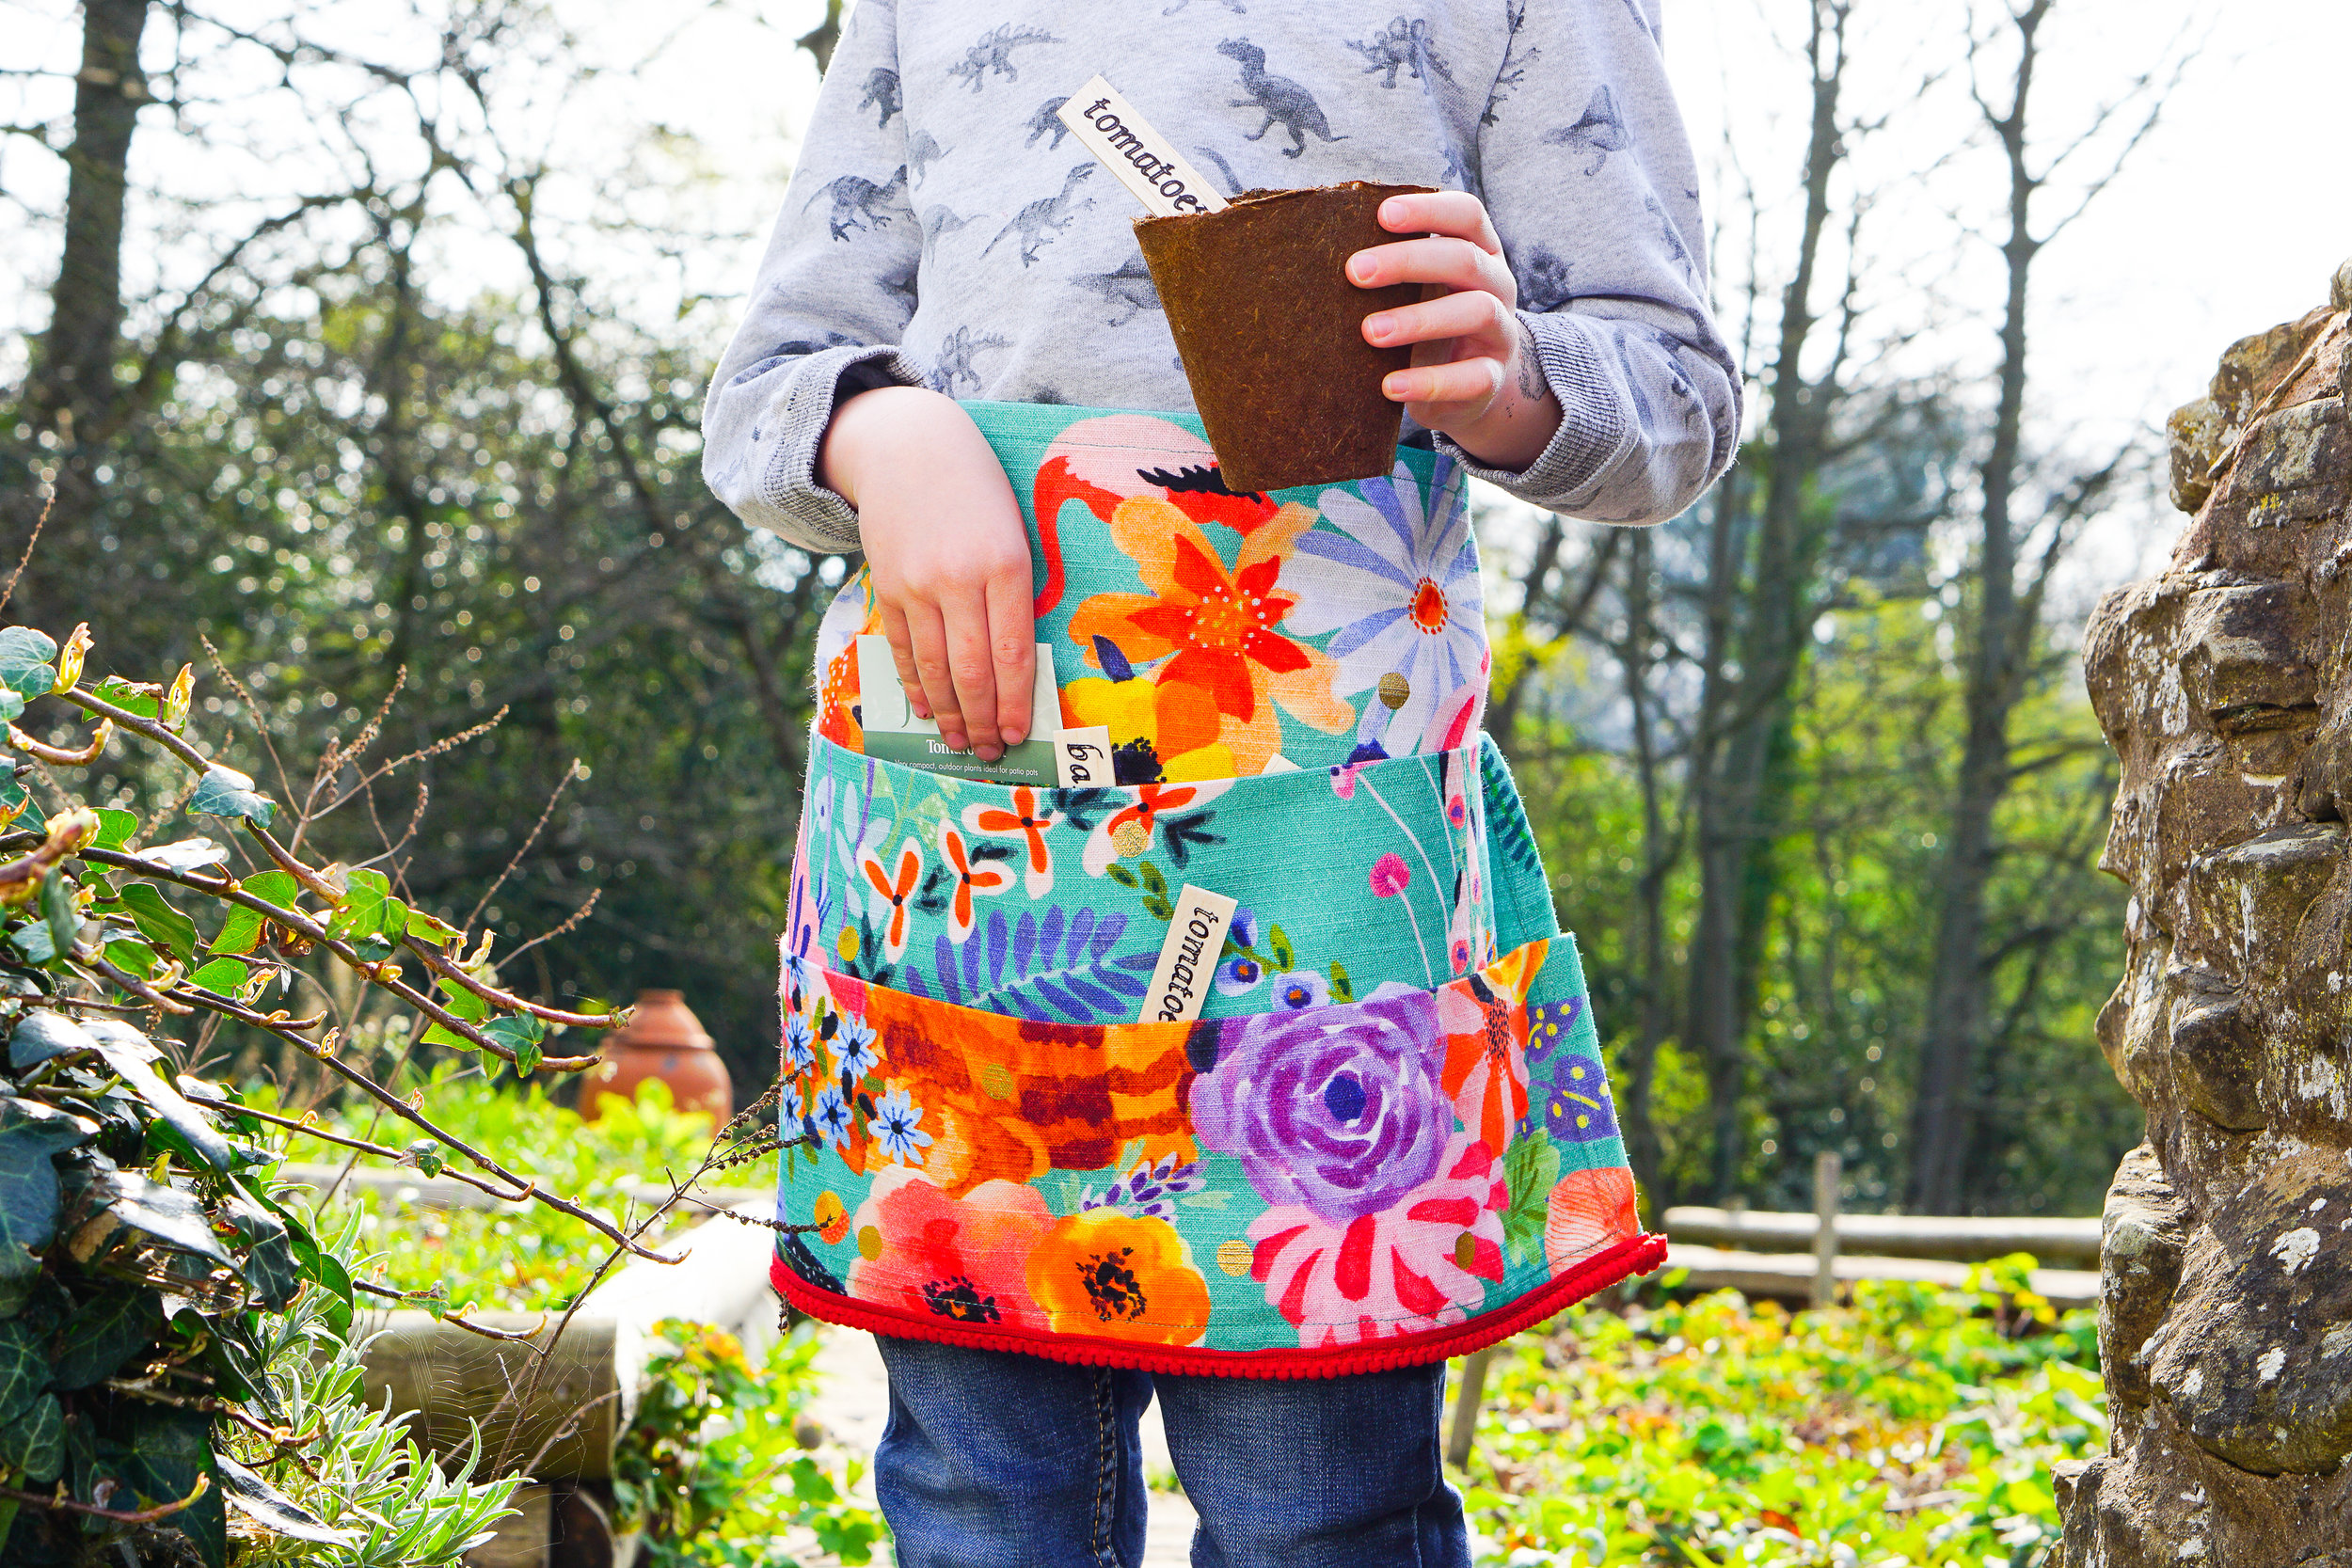 Sewing made simple: an outdoor apron for kids